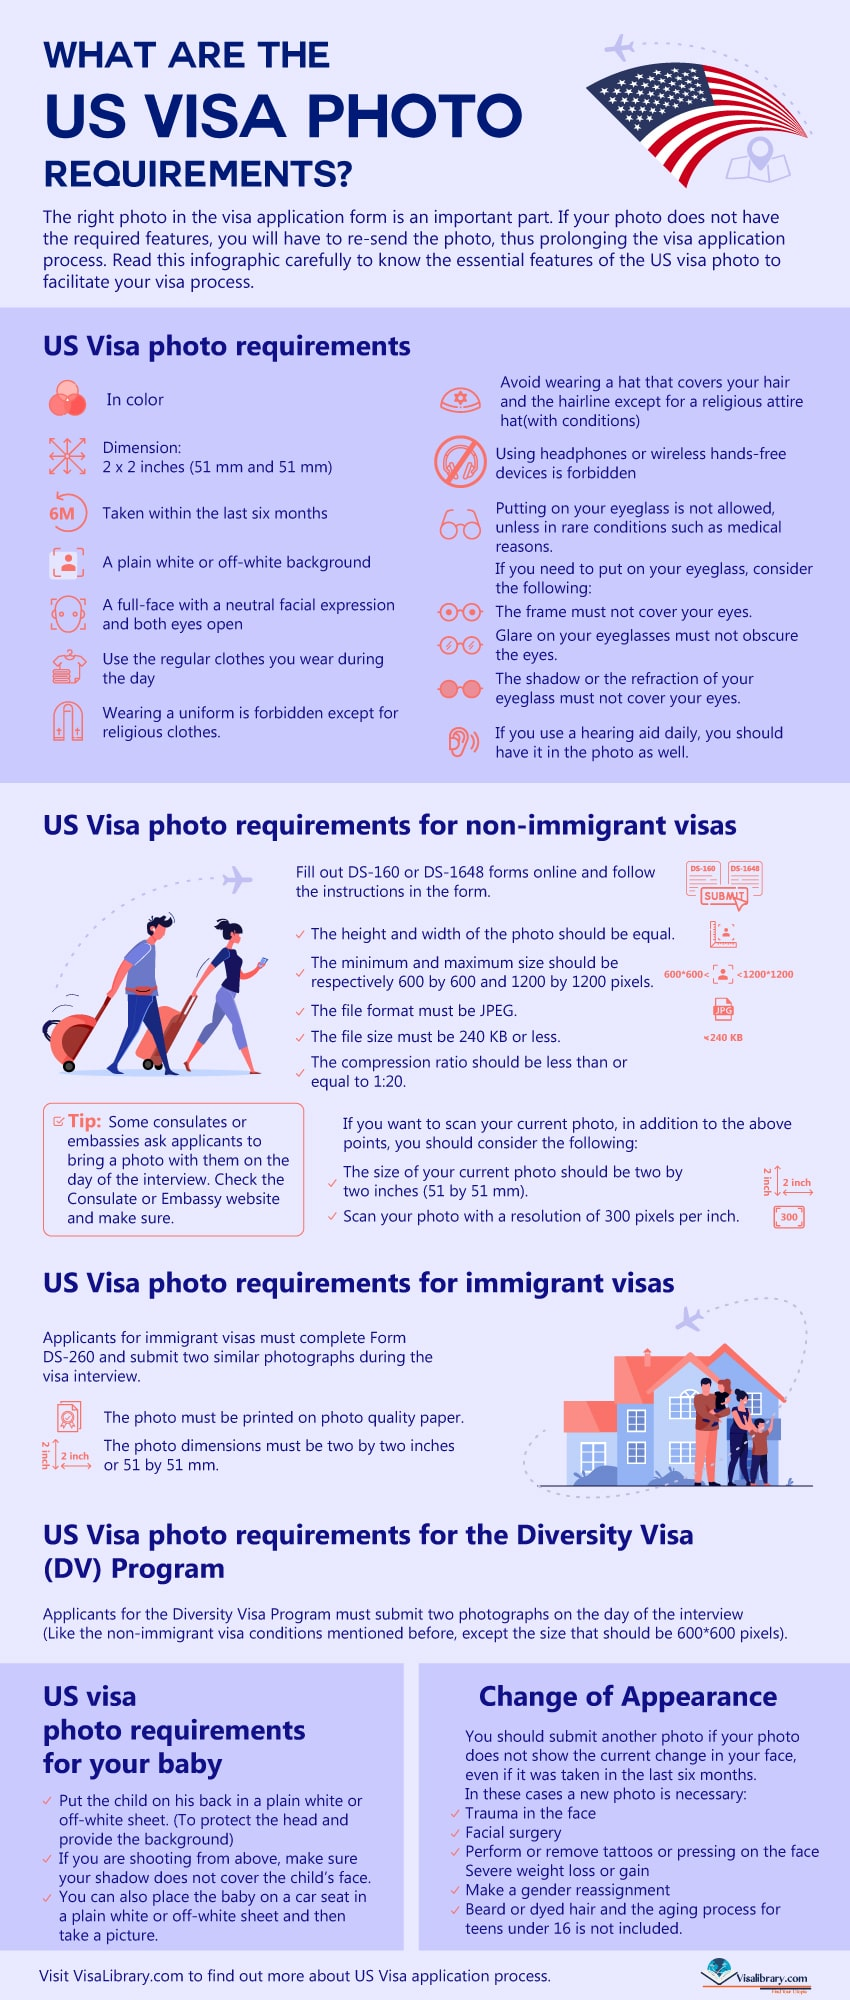 What are the US Visa Photo Requirements?